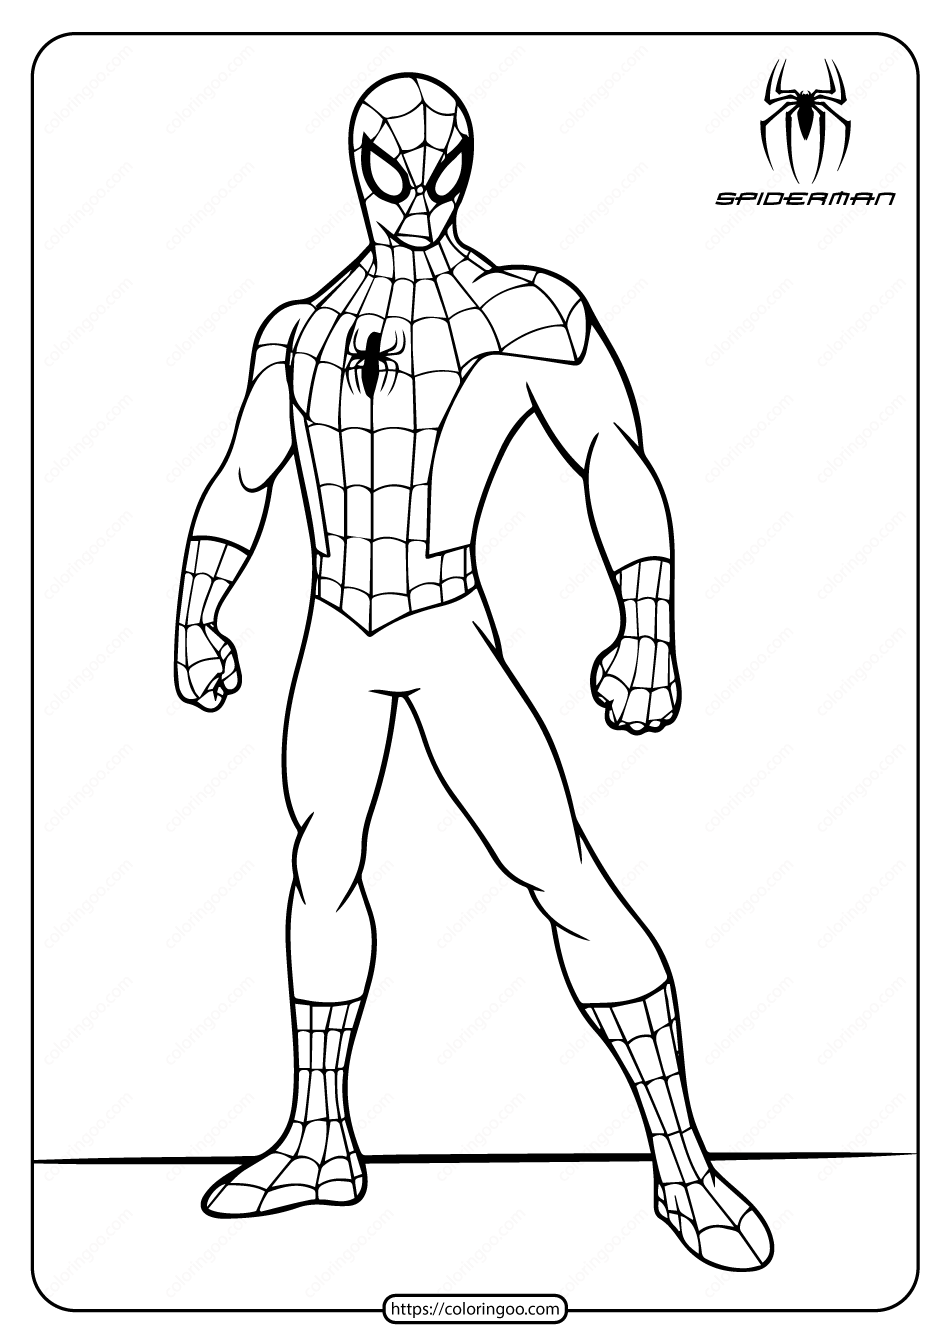 spiderman colouring pics 12 coloring pictures spiderman print color craft pics spiderman colouring